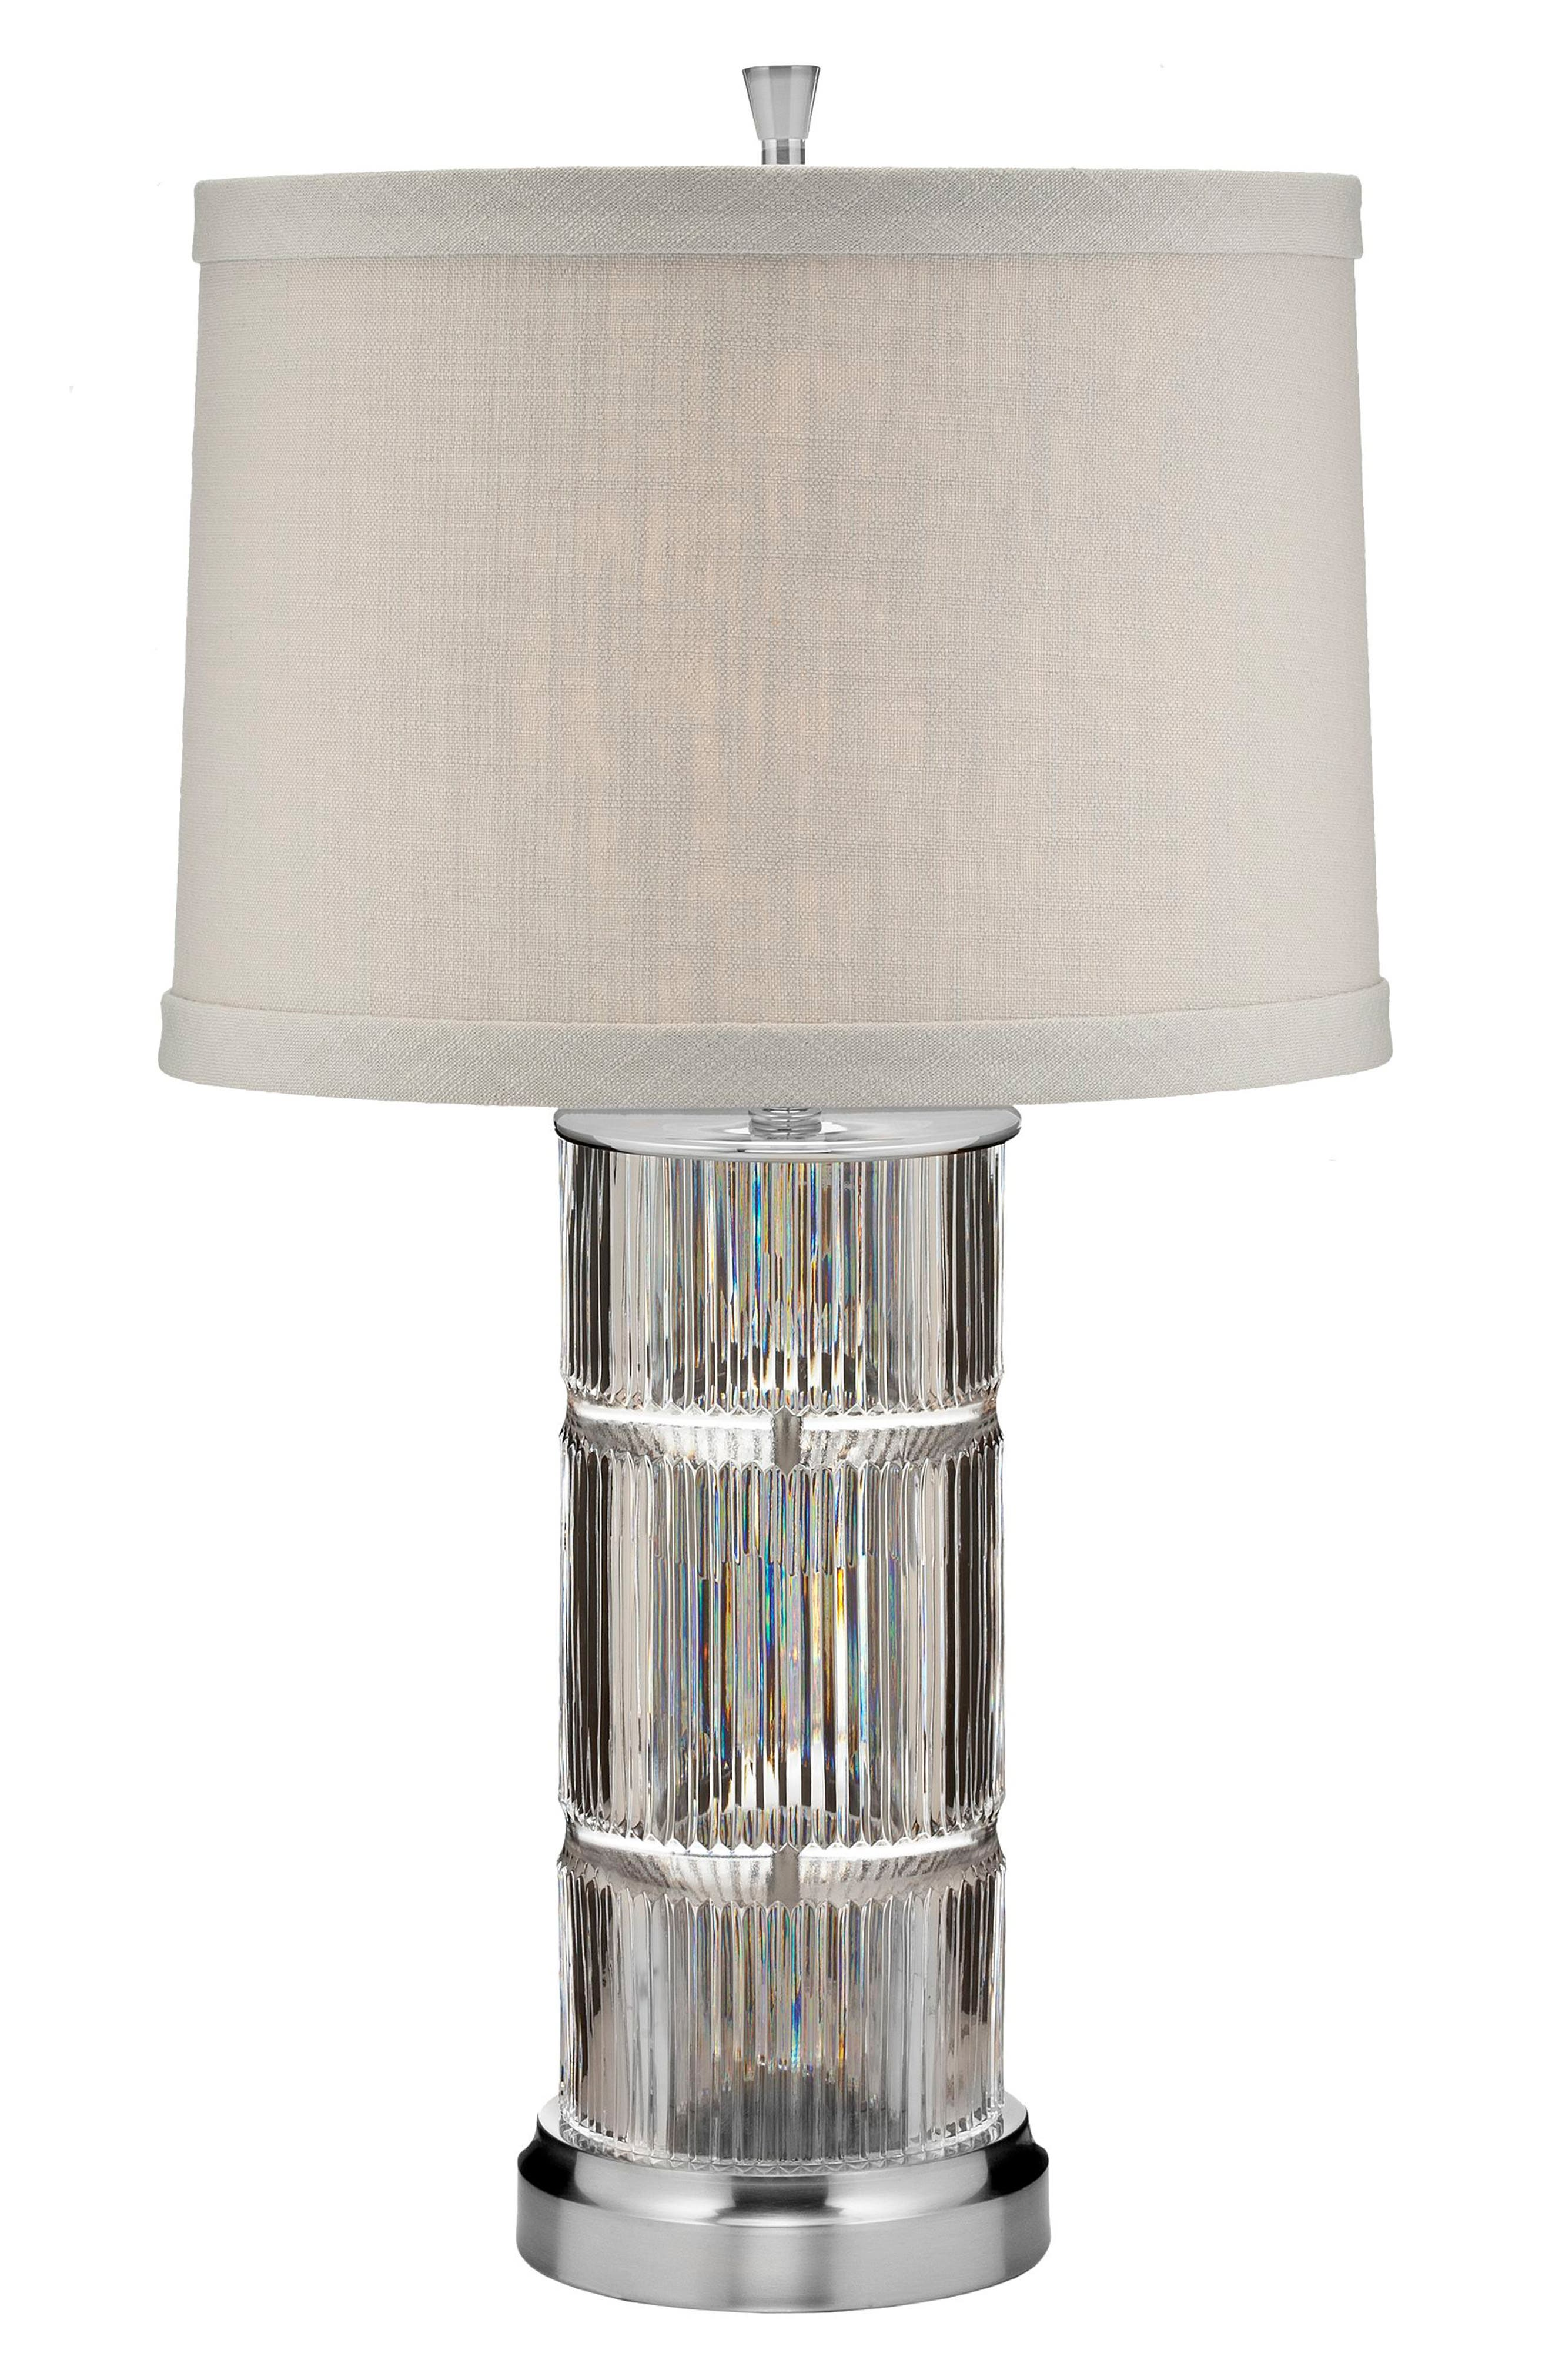 Main Image - Waterford Linear Crystal Table Lamp